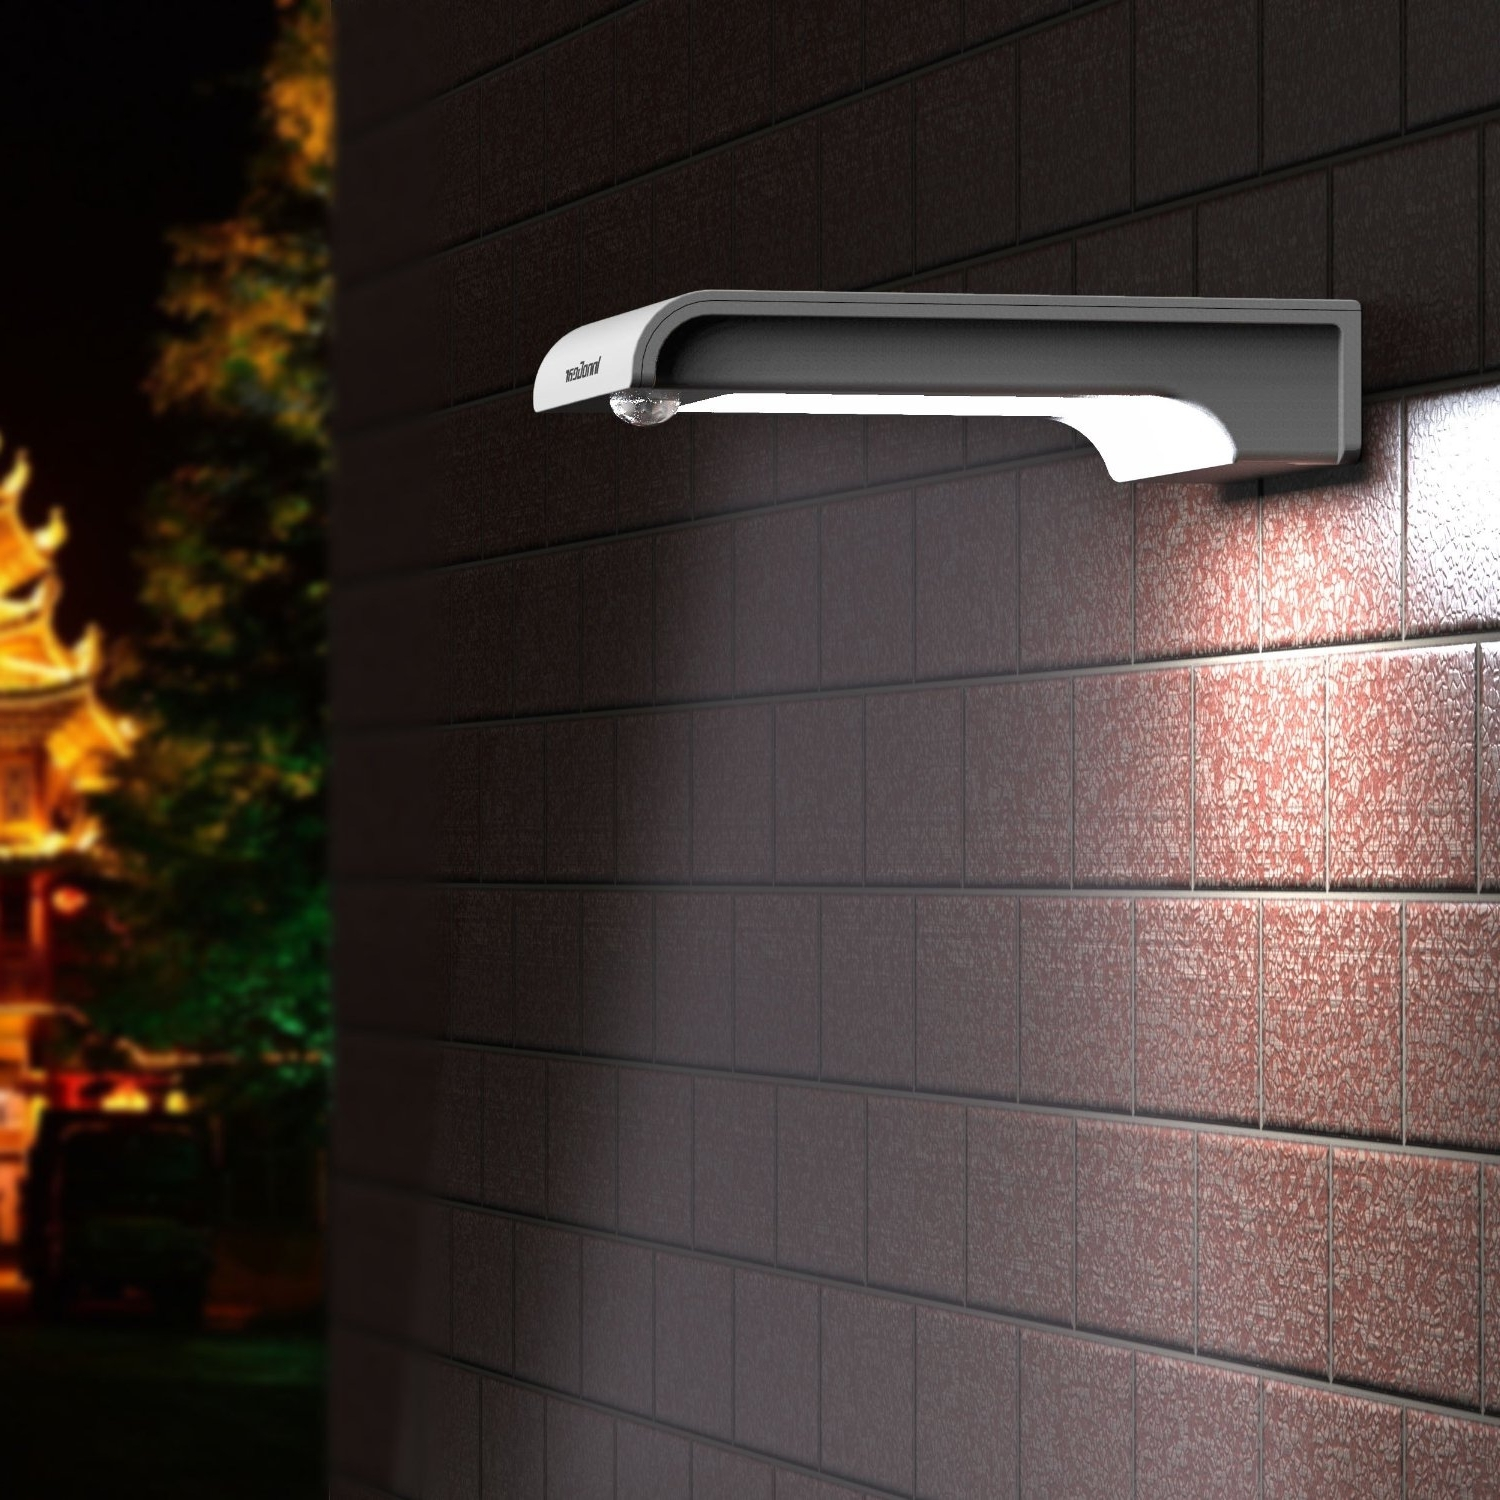 Latest Solar Powered Porch Light Amazon Com Upgraded Motion Sensor Innogear Inside Hanging Outdoor Security Lights (View 5 of 20)